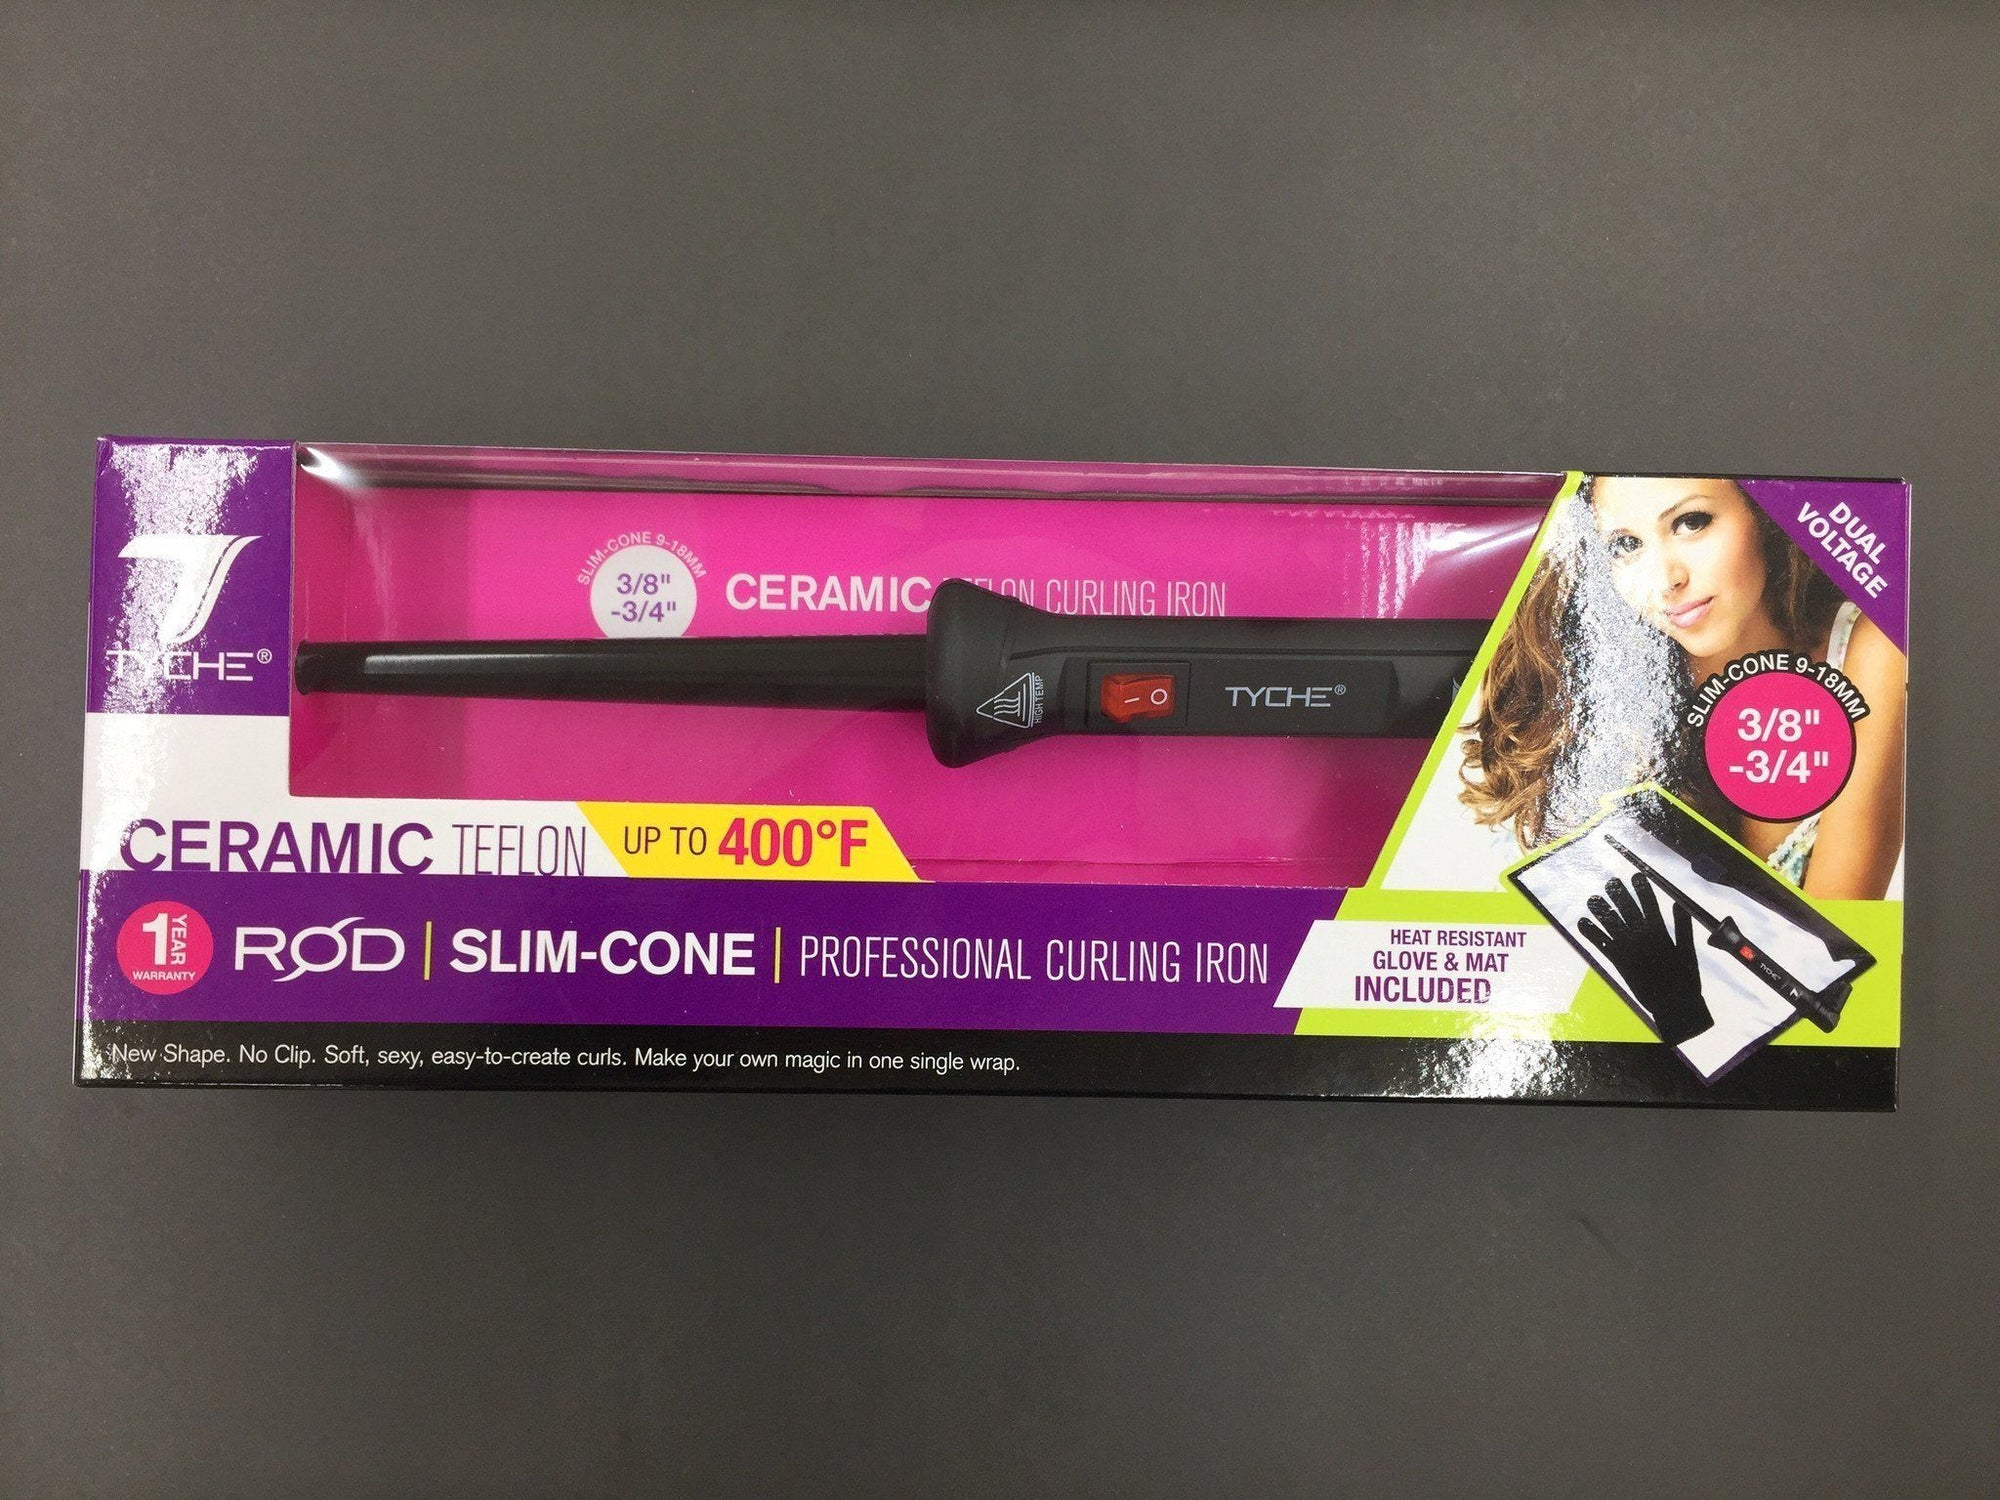 "Tyche 0.375-0.75"" Ceramic Teflon Slim-Cone Curling Iron #TCR-SC"